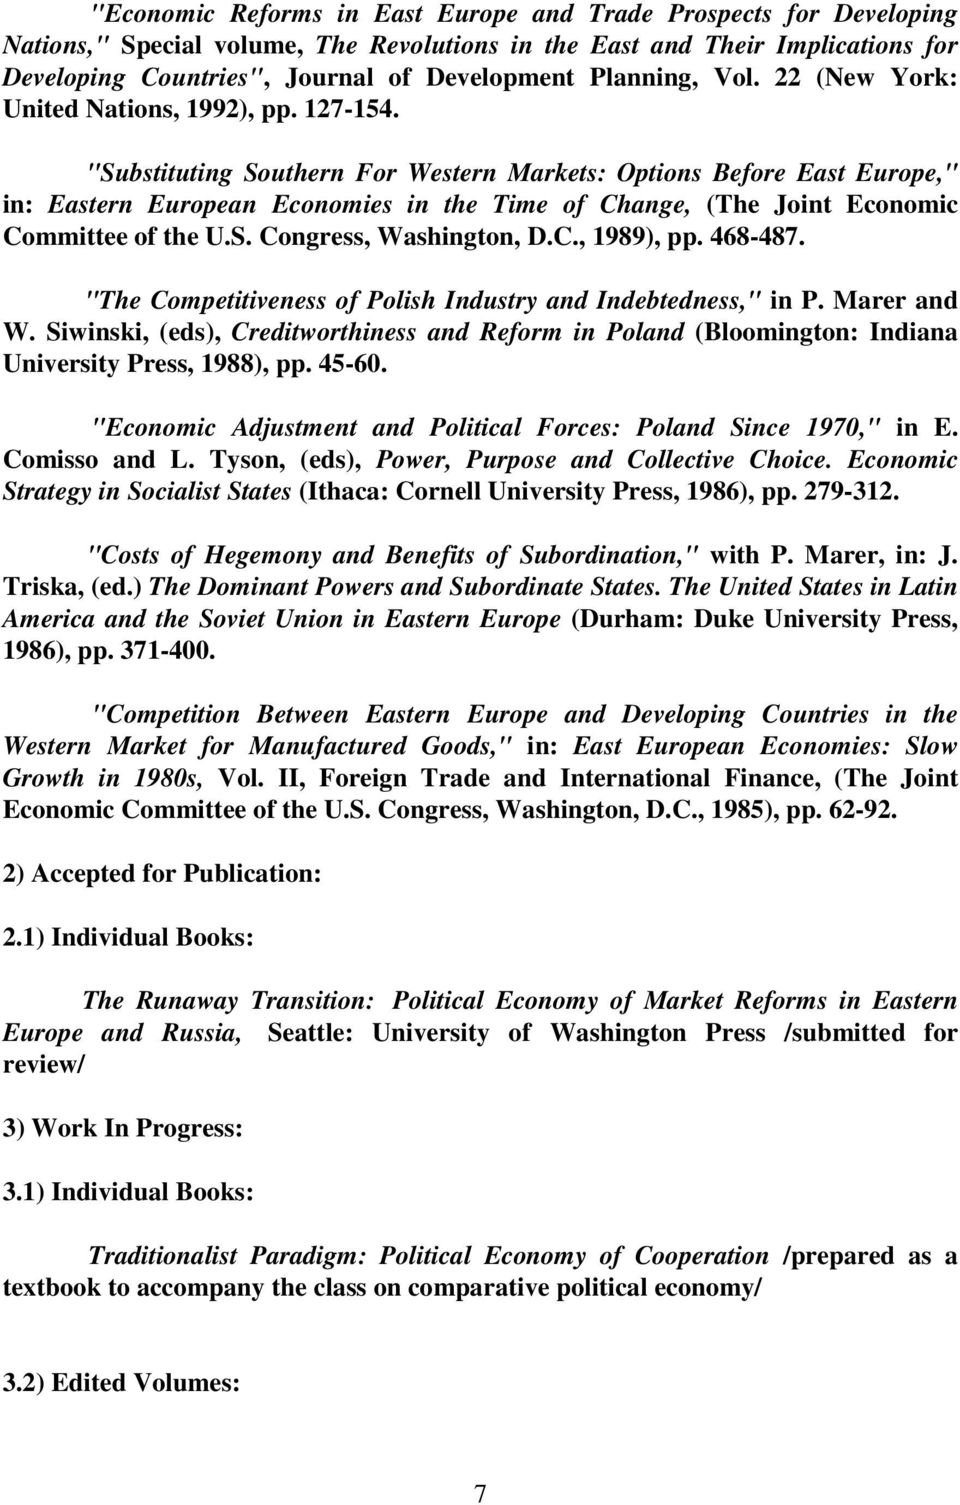 """Substituting Southern For Western Markets: Options Before East Europe,"" in: Eastern European Economies in the Time of Change, (The Joint Economic Committee of the U.S. Congress, Washington, D.C., 1989), pp."